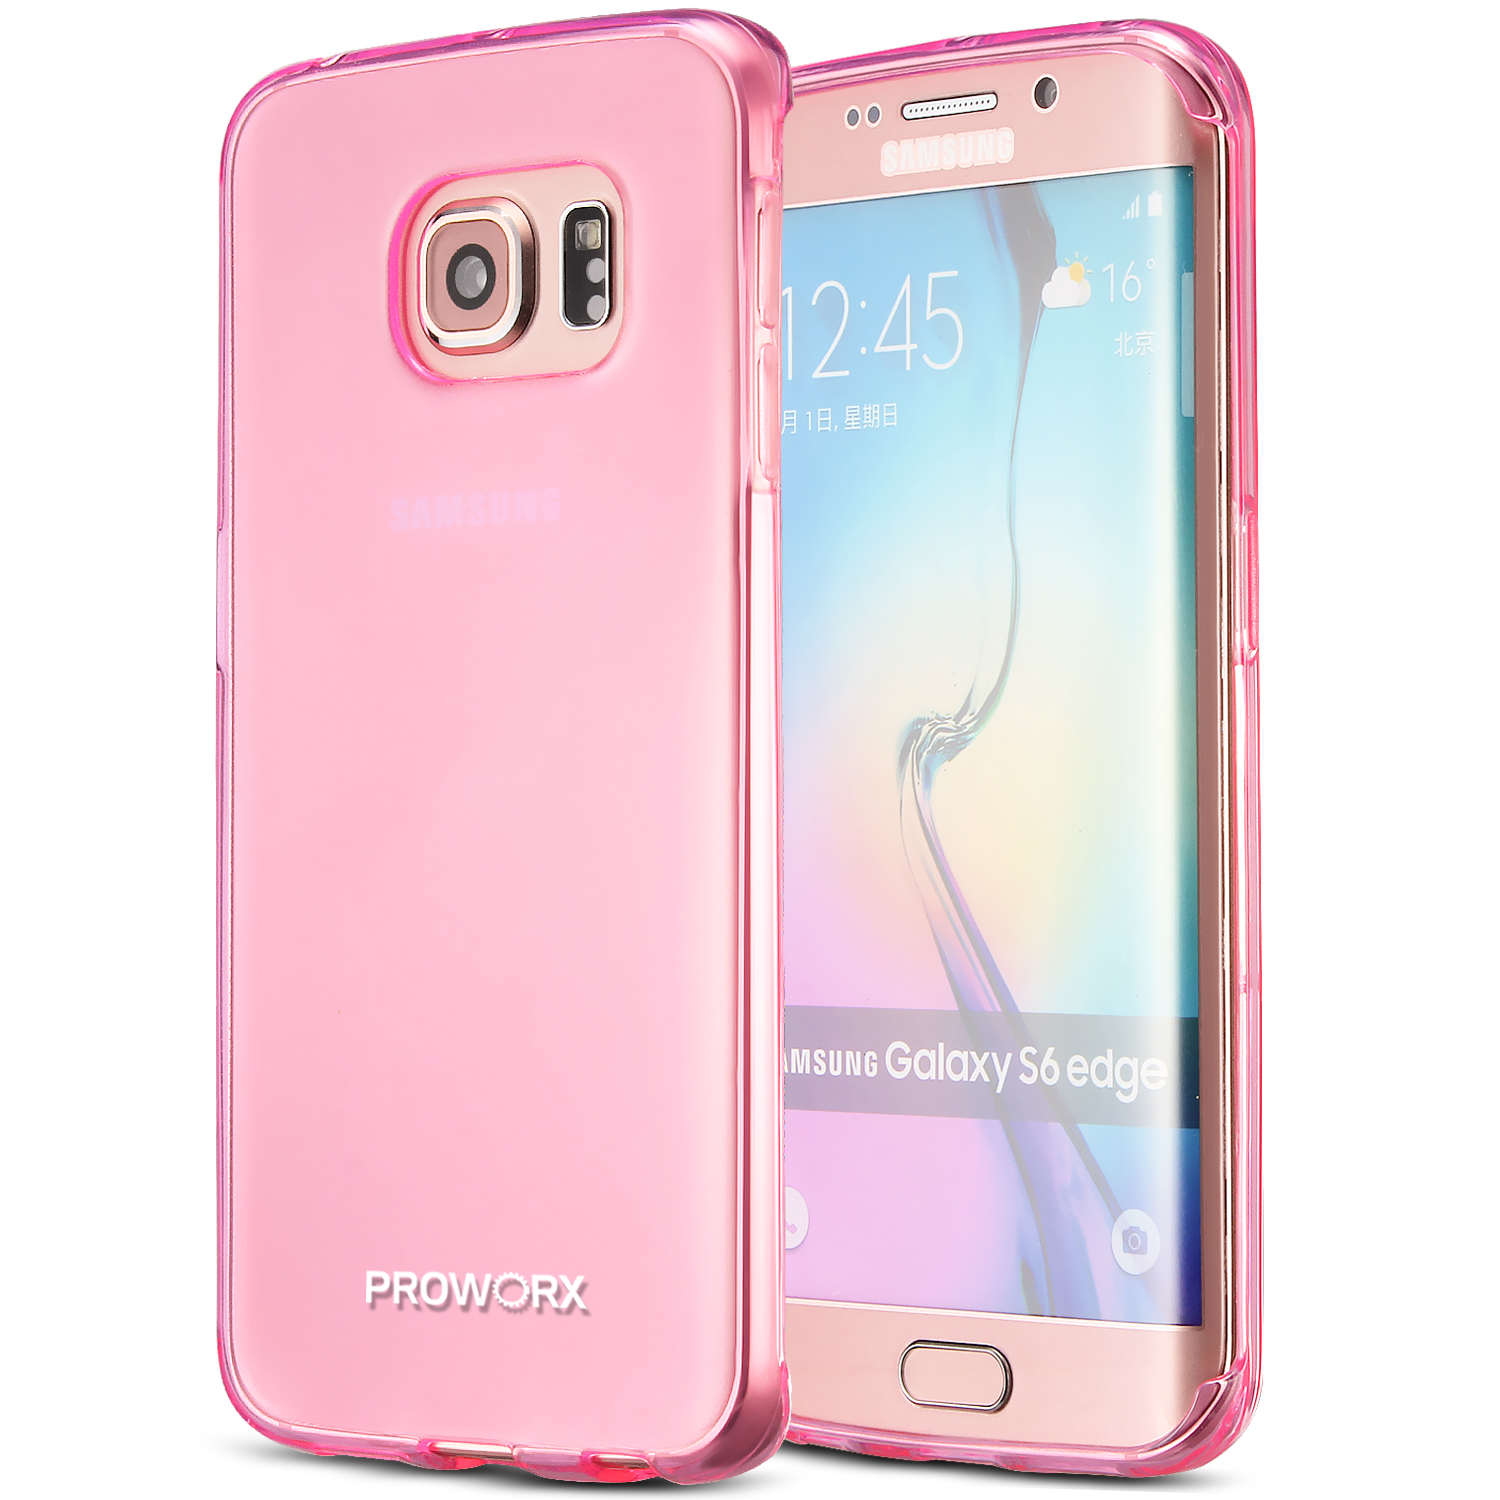 Samsung Galaxy S6 Edge Plus + Hot Pink ProWorx Ultra Slim Thin Scratch Resistant TPU Silicone Case Cover